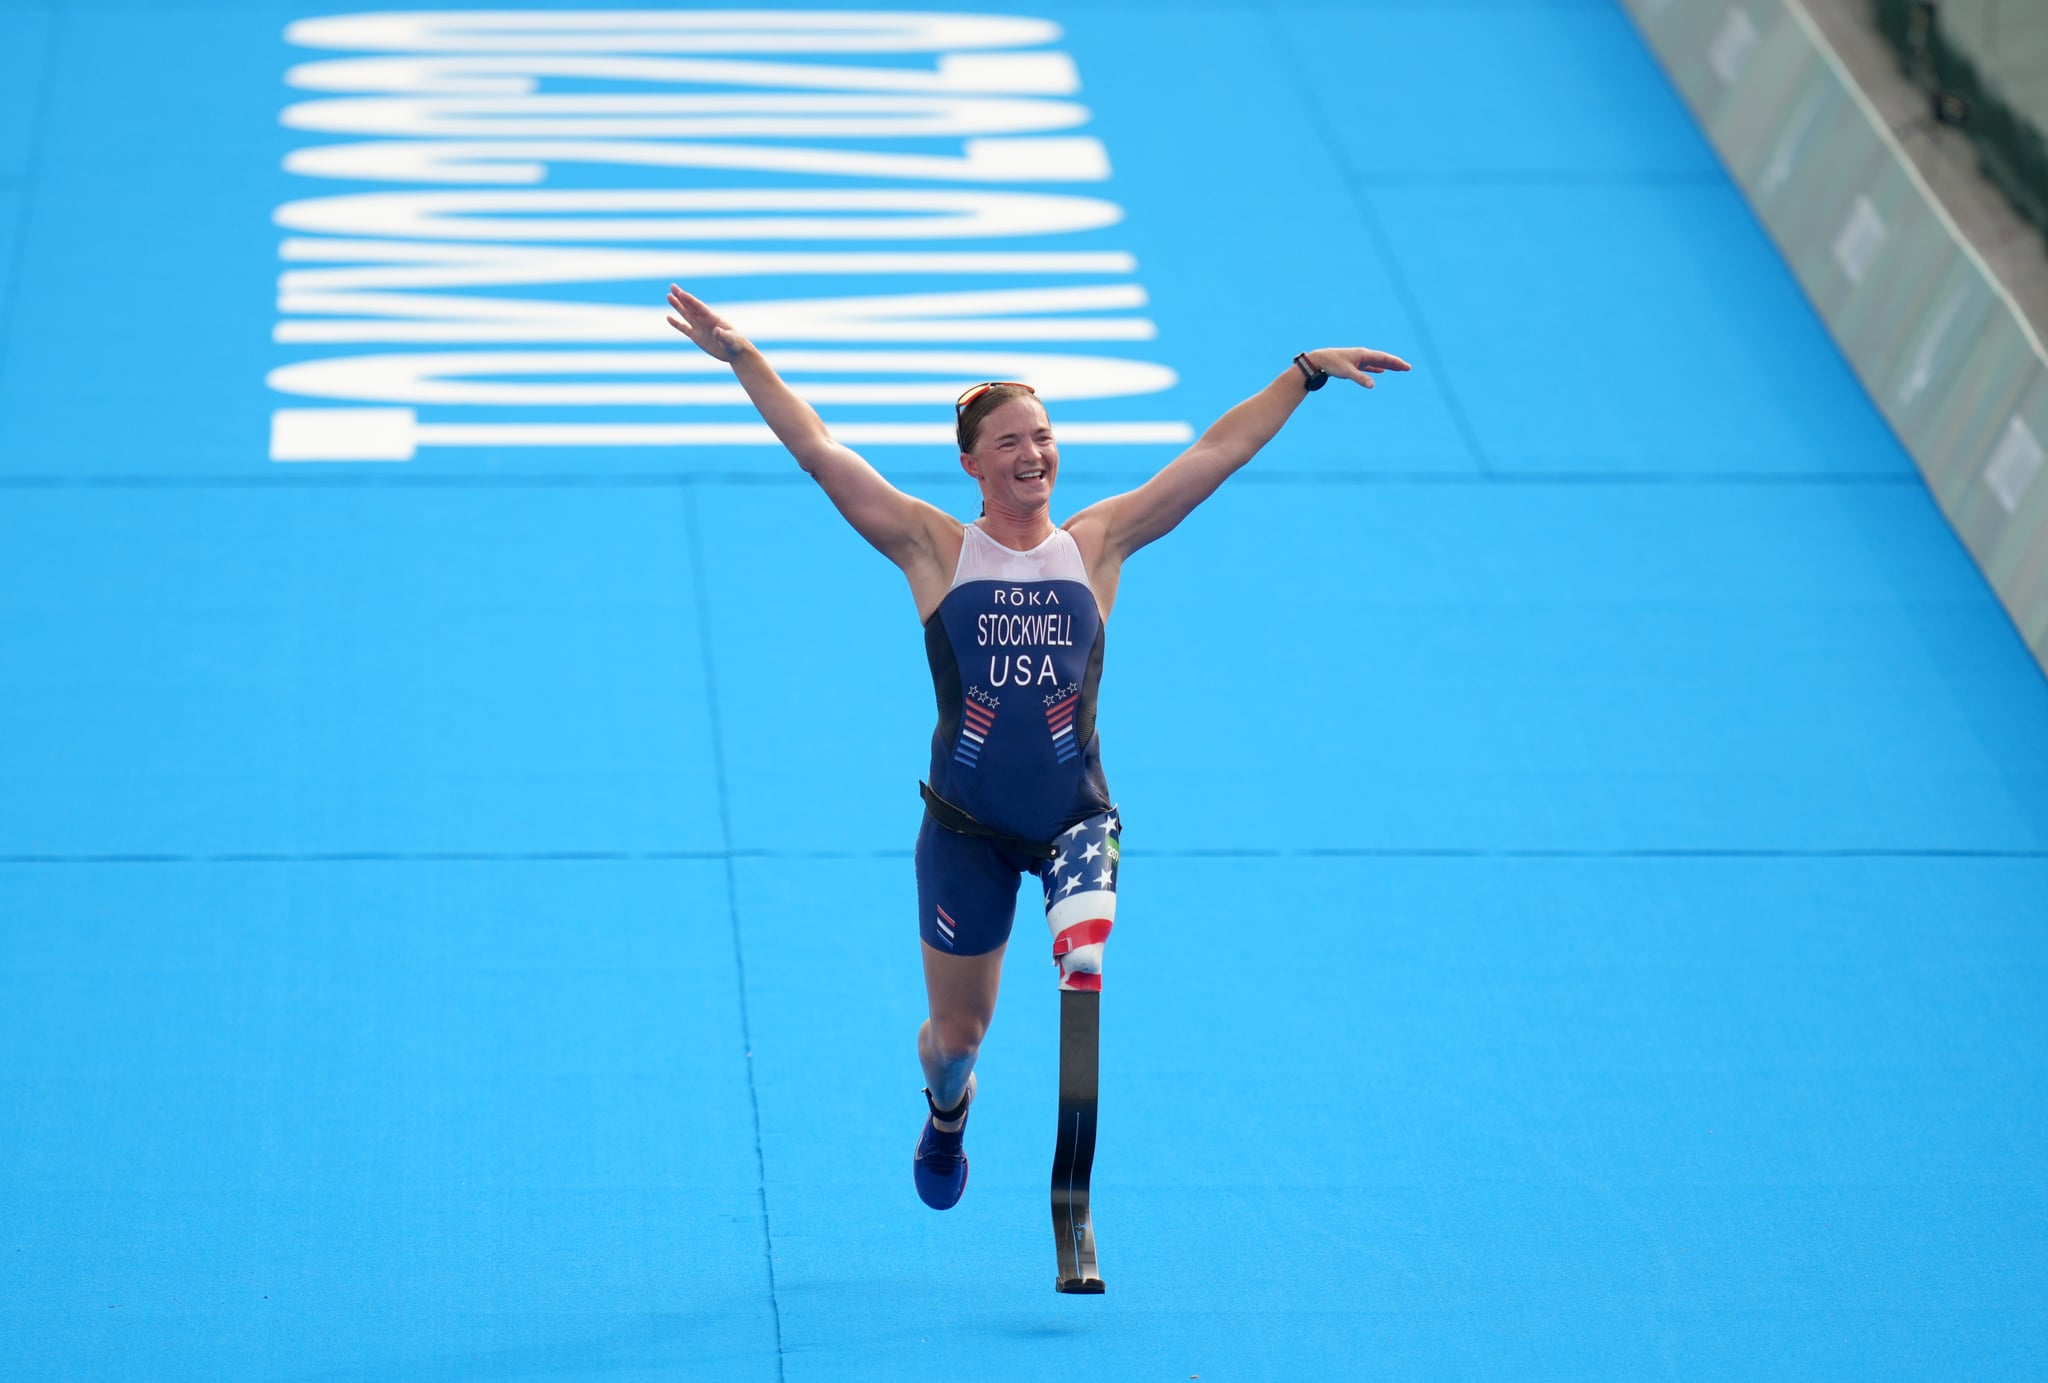 USA's Melissa Stockwell crosses the line to finish fifth in the Women's PTS2 Triathlon at the Odaiba Marine Park during day four of the Tokyo 2020 Paralympic Games in Japan. Picture date: Saturday August 28, 2021. (Photo by John Walton/PA Images via Getty Images)